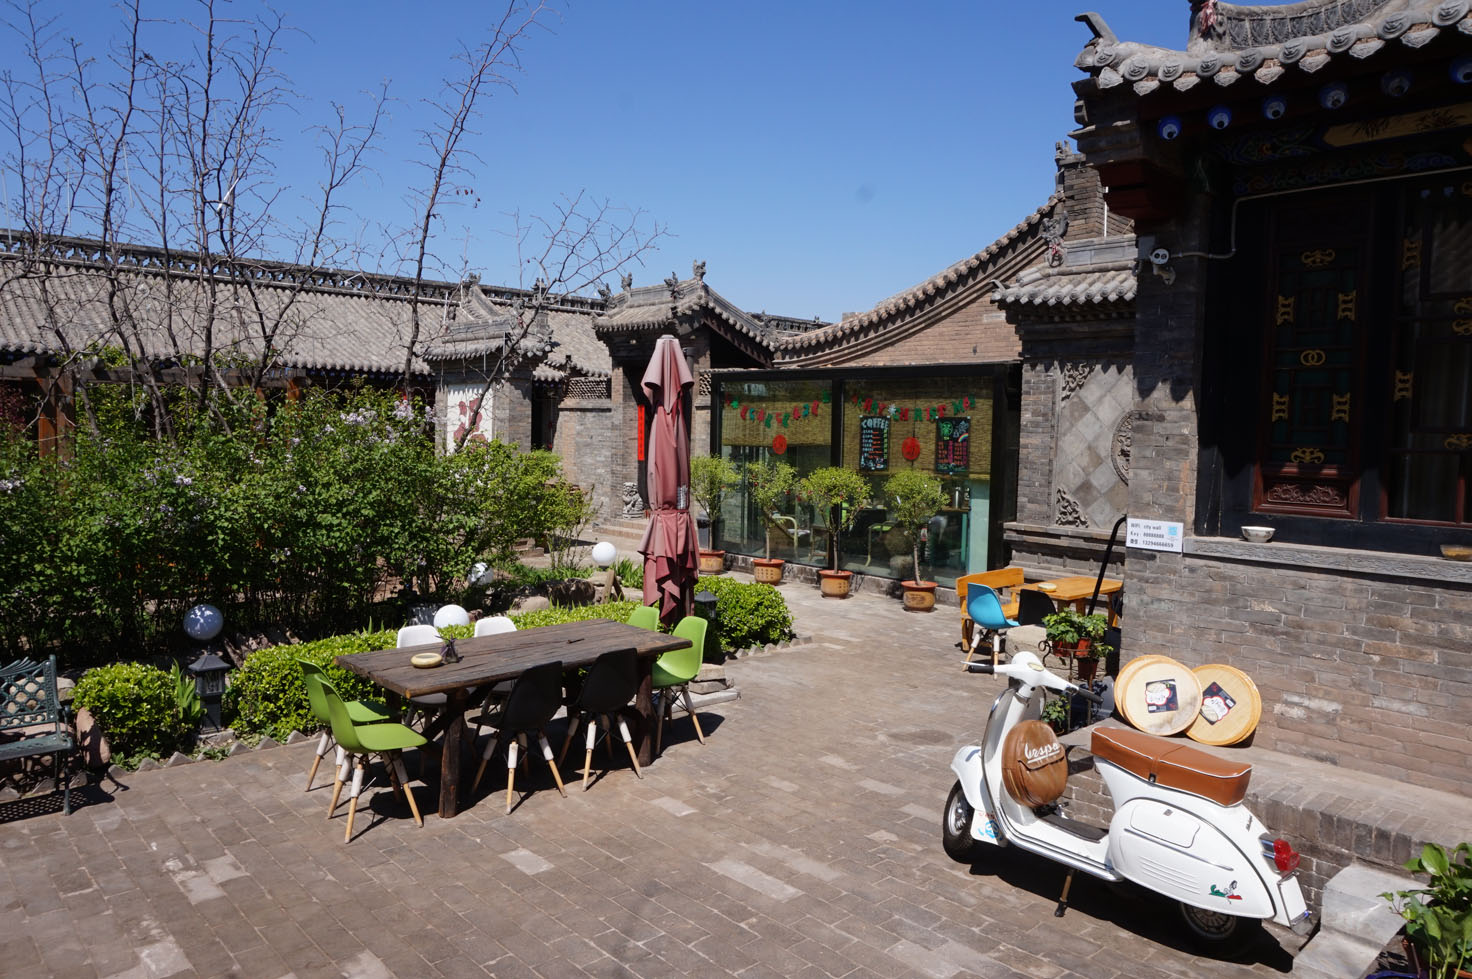 Our hotel in Pingyao